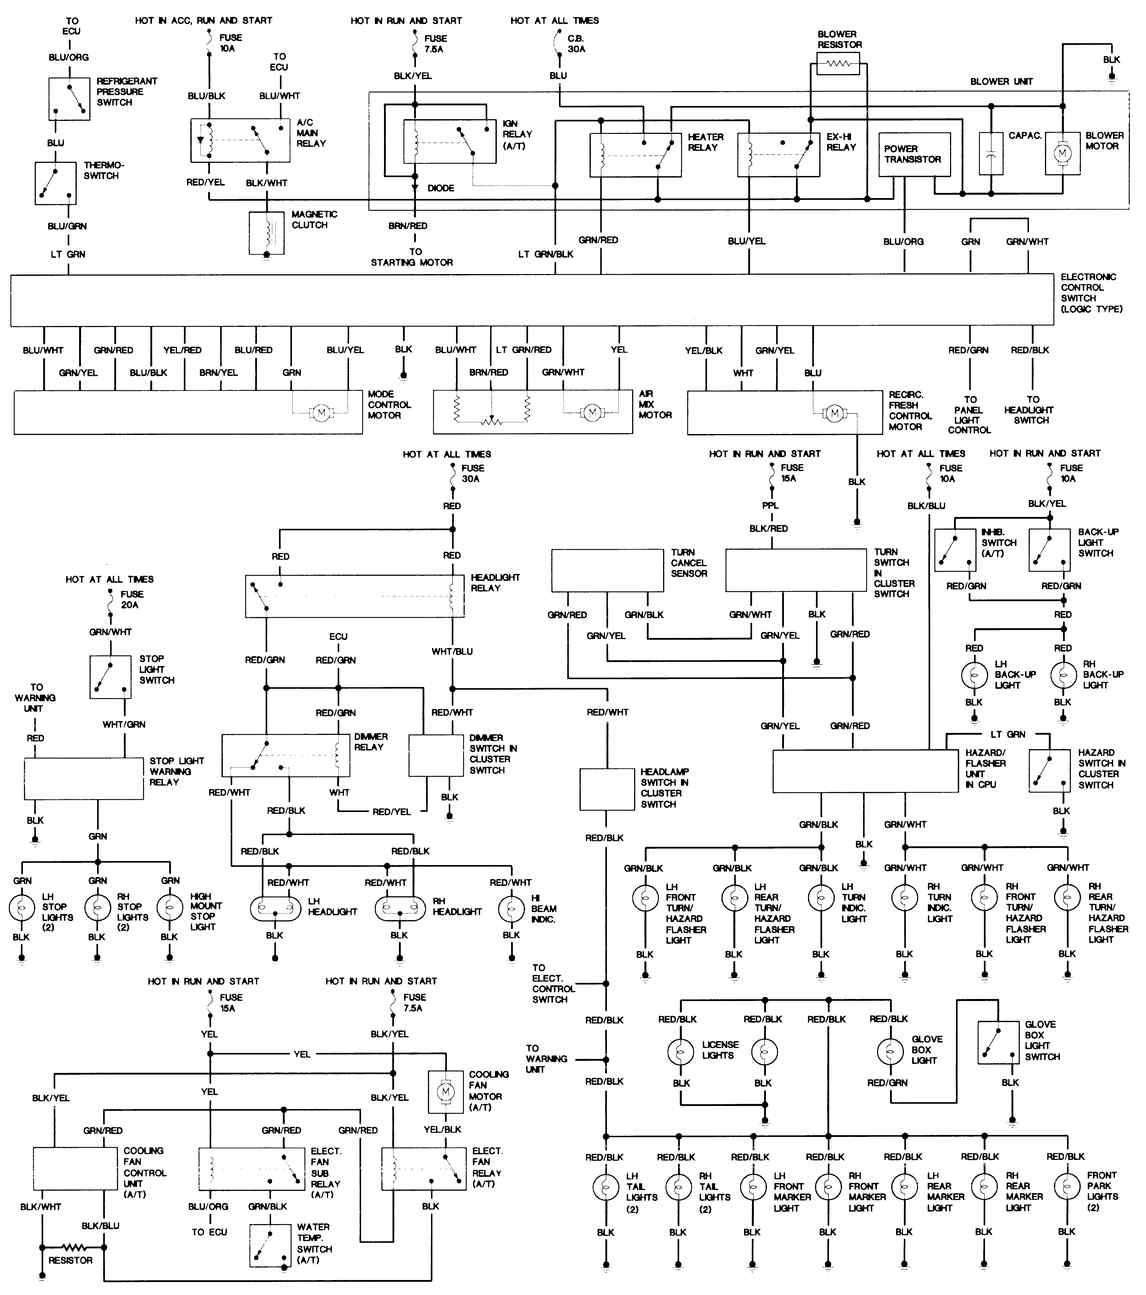 mazda rx 7 fuse box wiring diagram  fuel pump rewire diagram wiring1987 mazda rx7 fuse box diagram rx7 fuse panel diagram wiring diagrammazda rx 7 fuse box wiring diagramsmazda rx 7 fuse